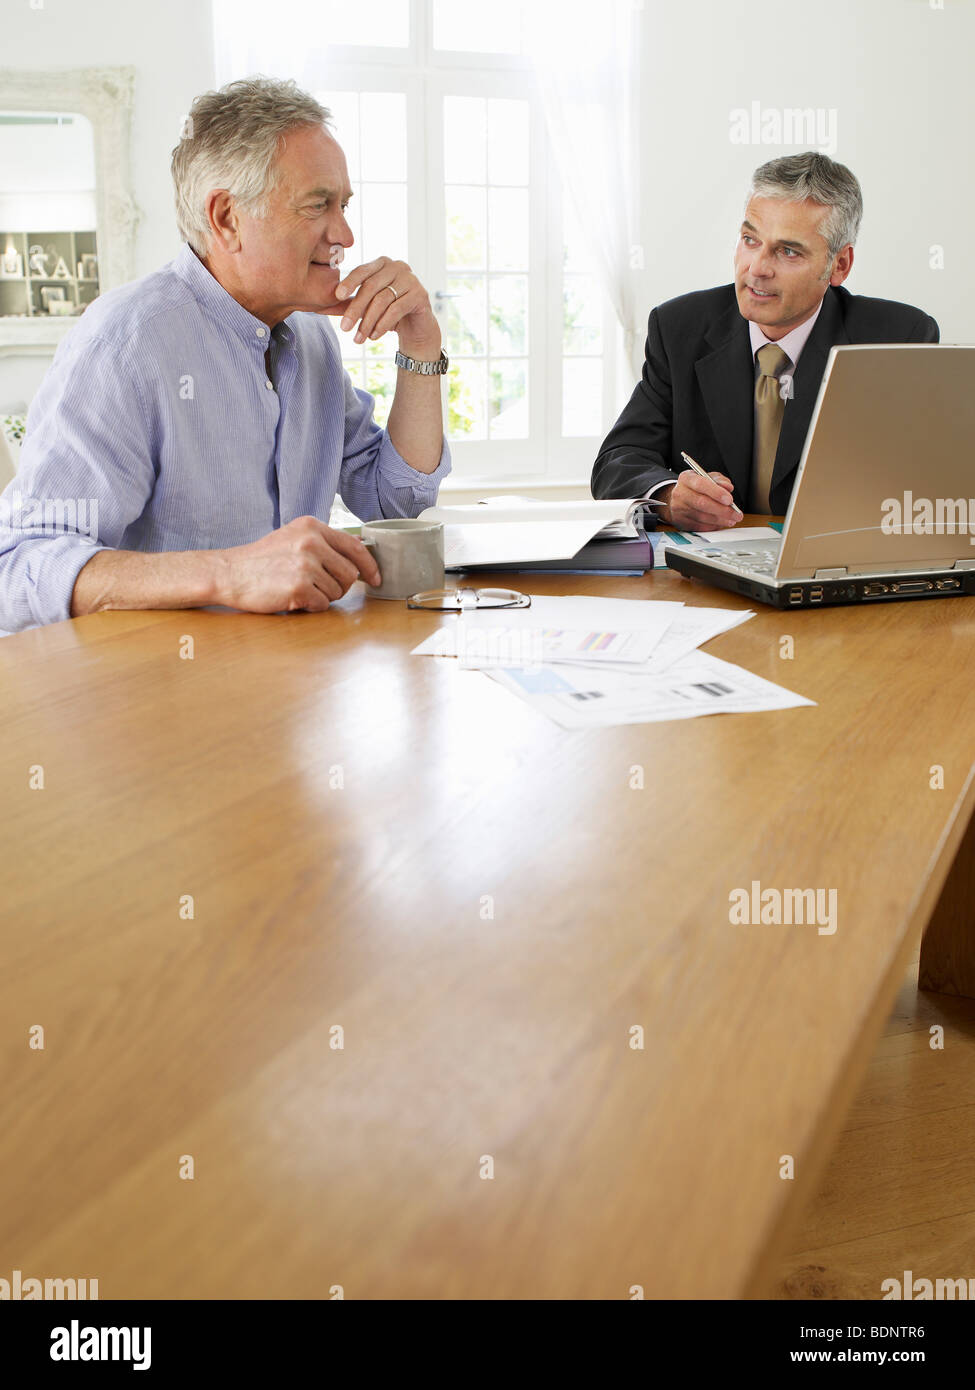 Senior man planning personal finance at home with finacial advisor - Stock Image